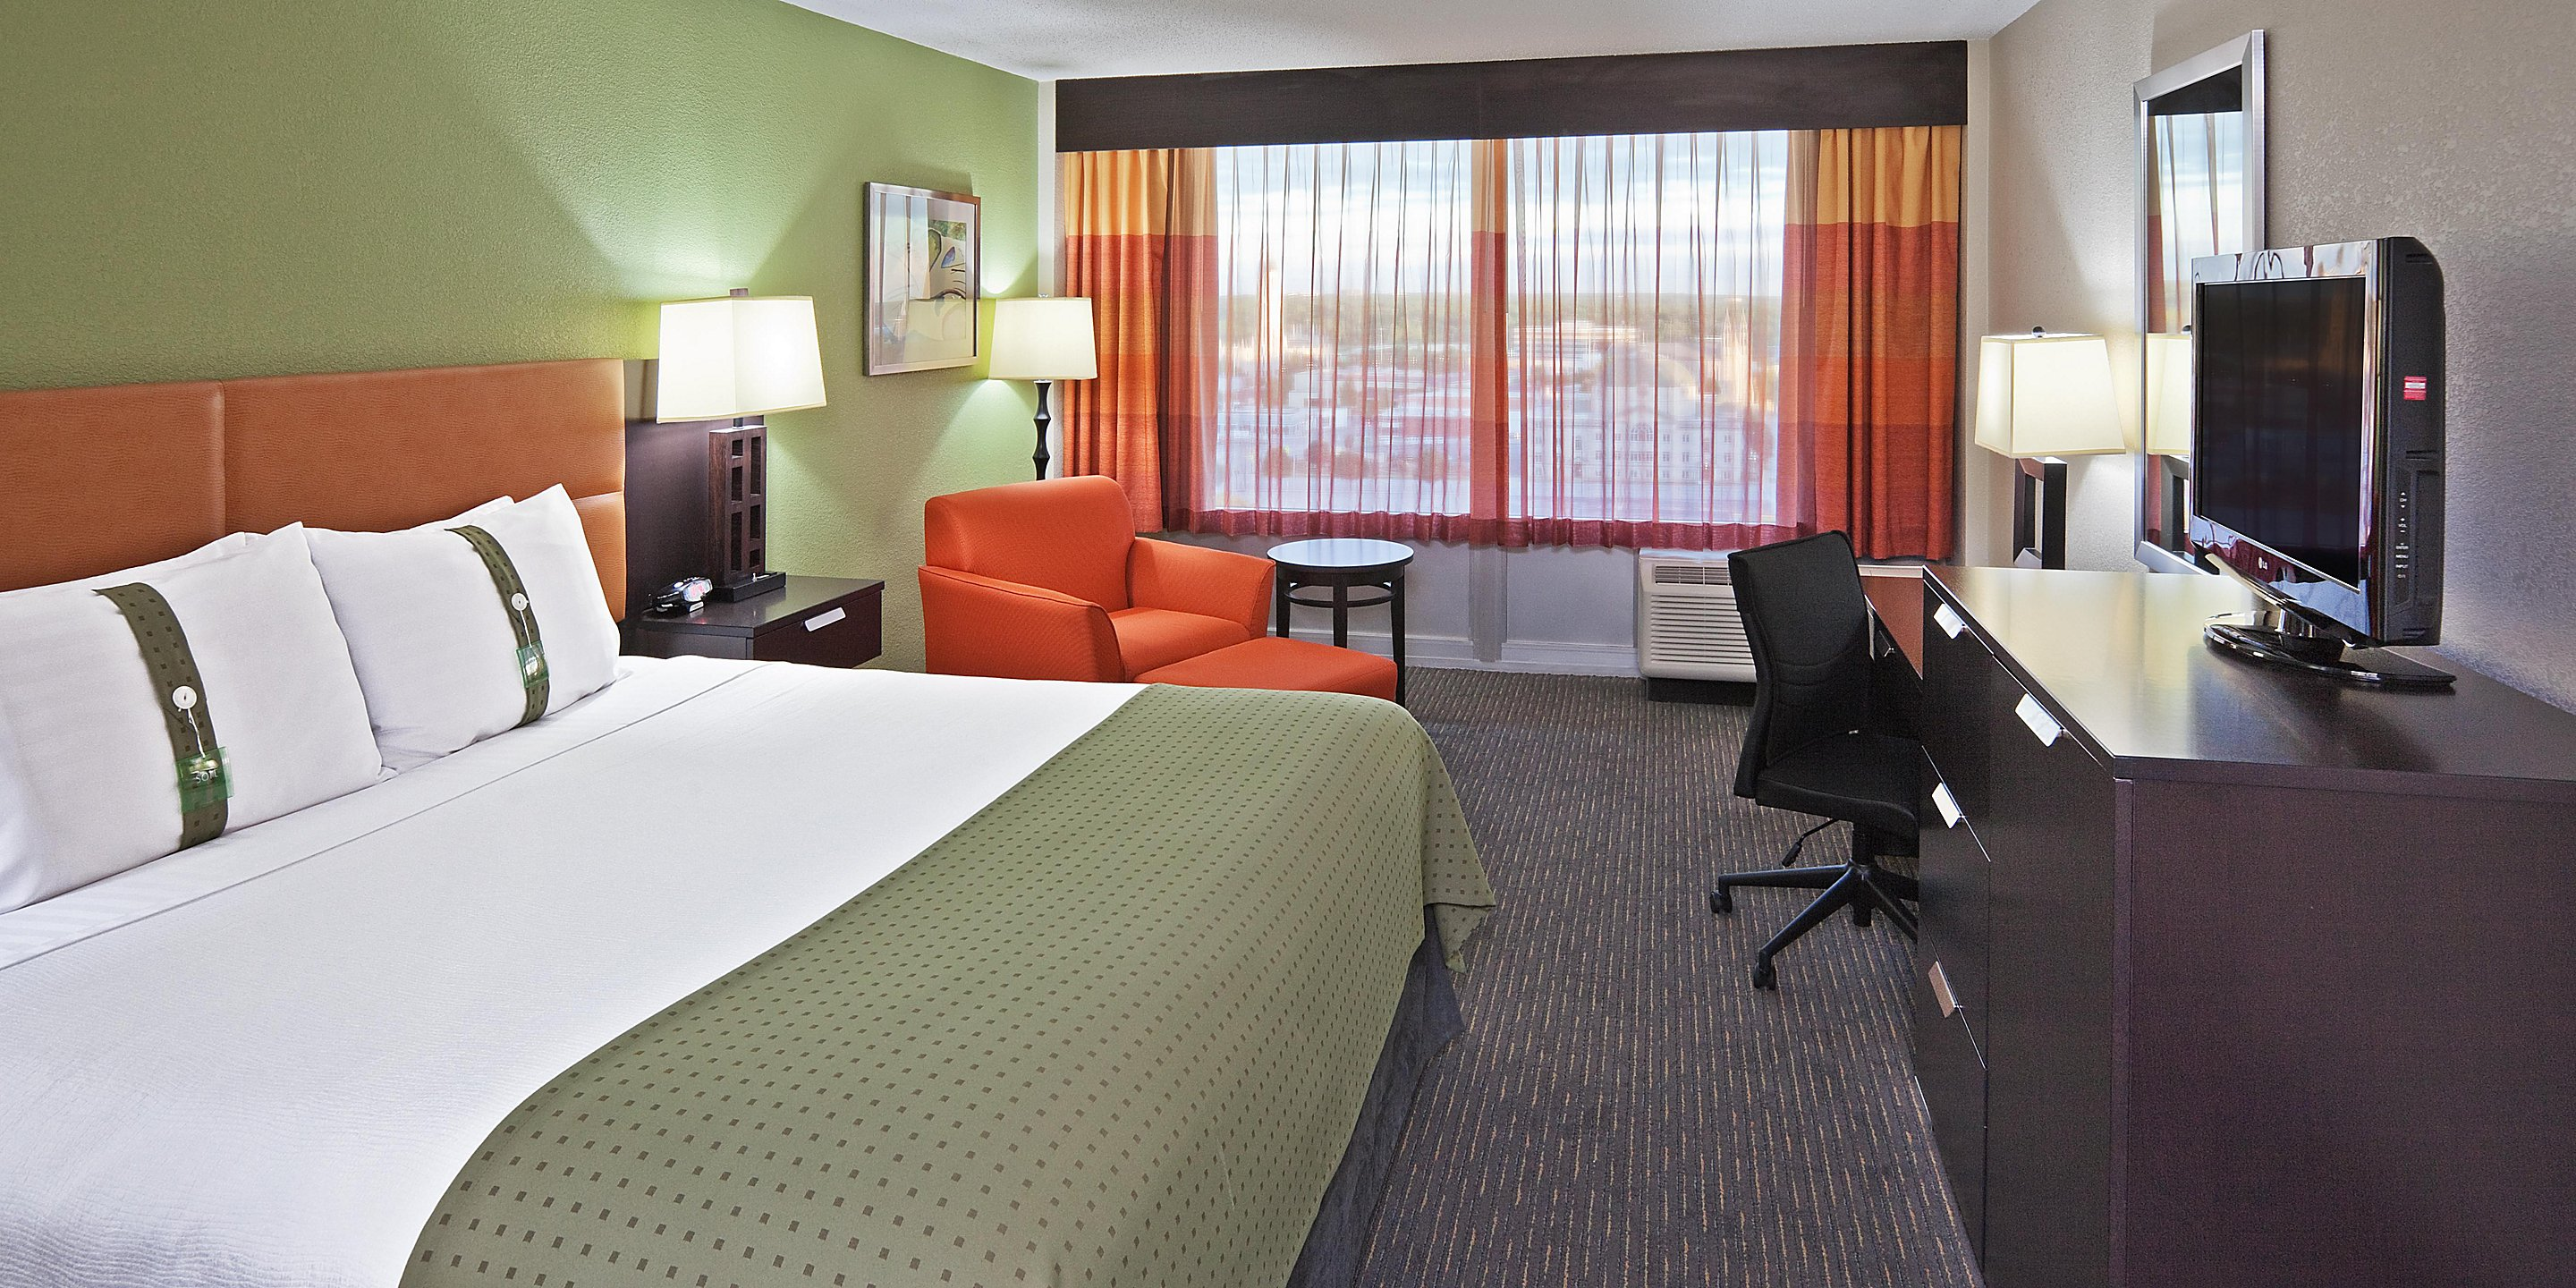 https://www.hotelsbyday.com/_data/default-hotel_image/3/17482/holiday-inn-tulsa-2533396774-2x1.jpeg